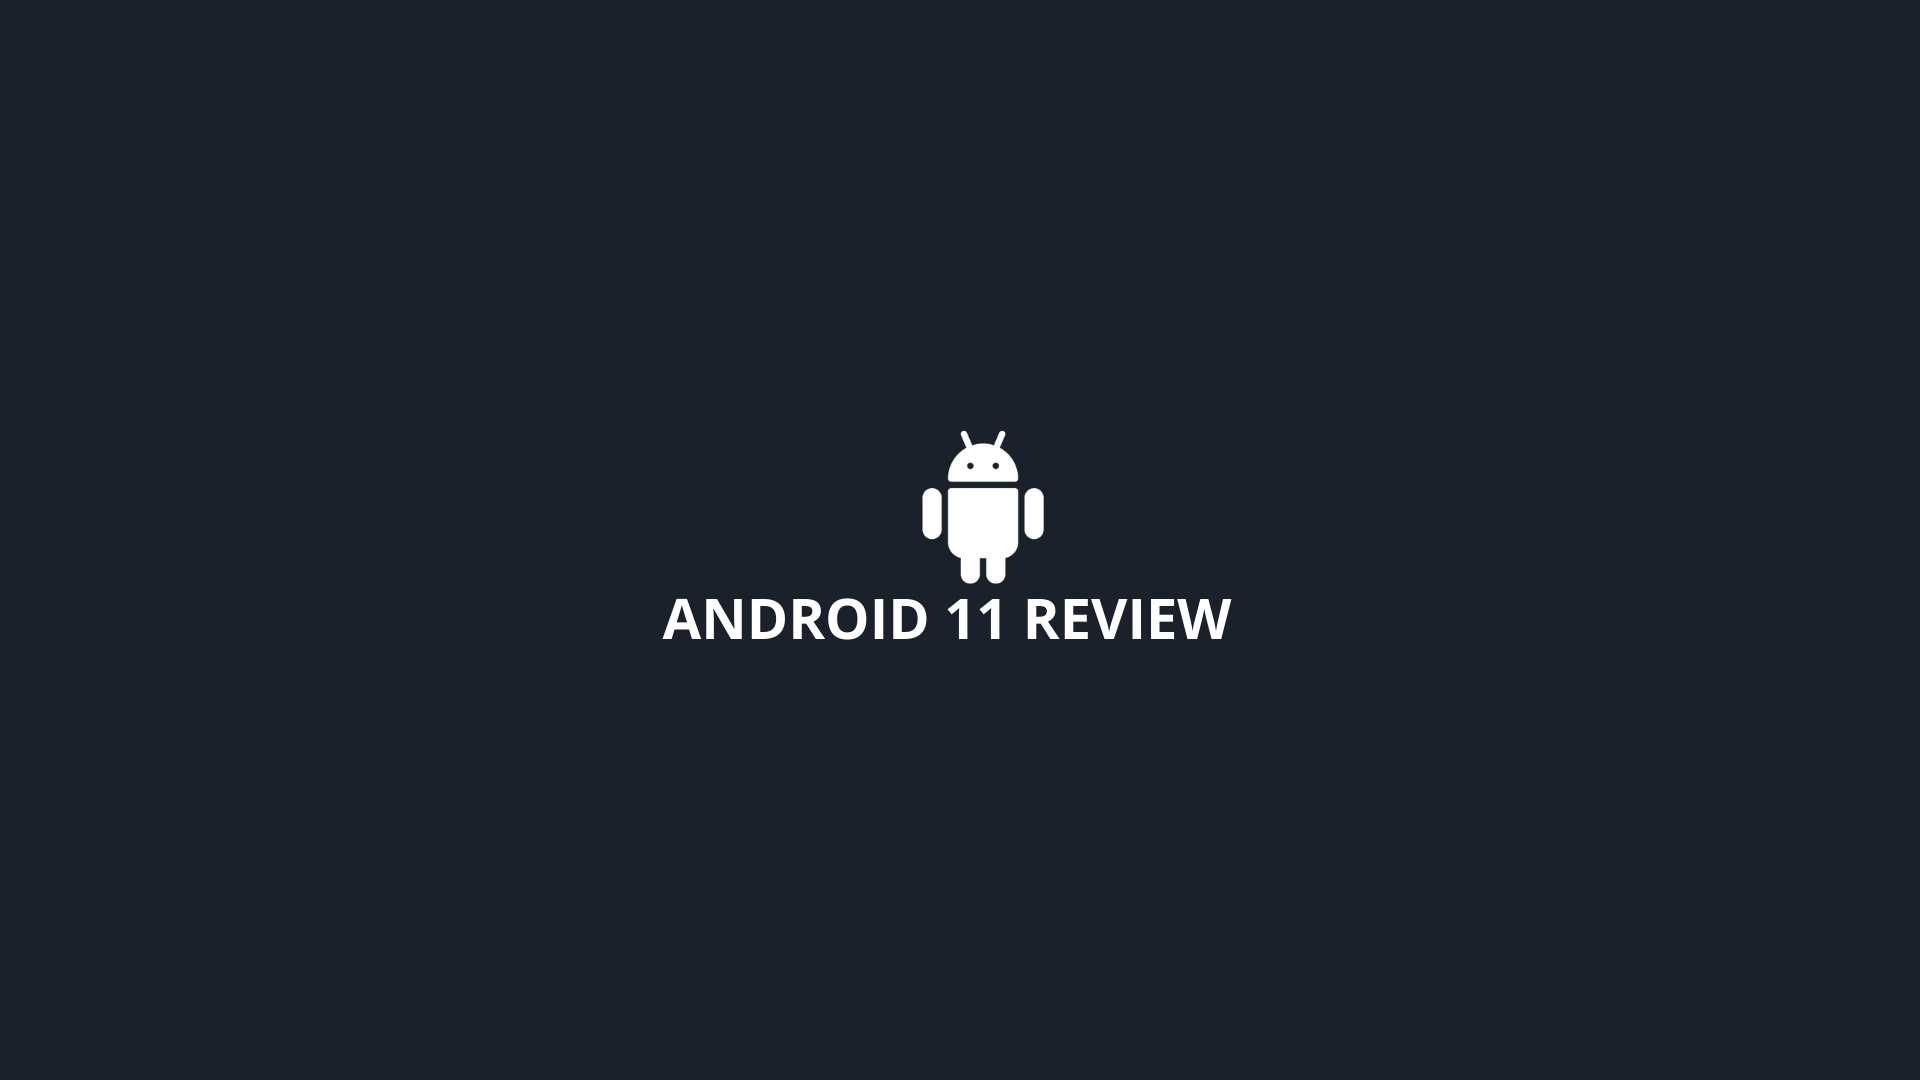 Android 11 Review